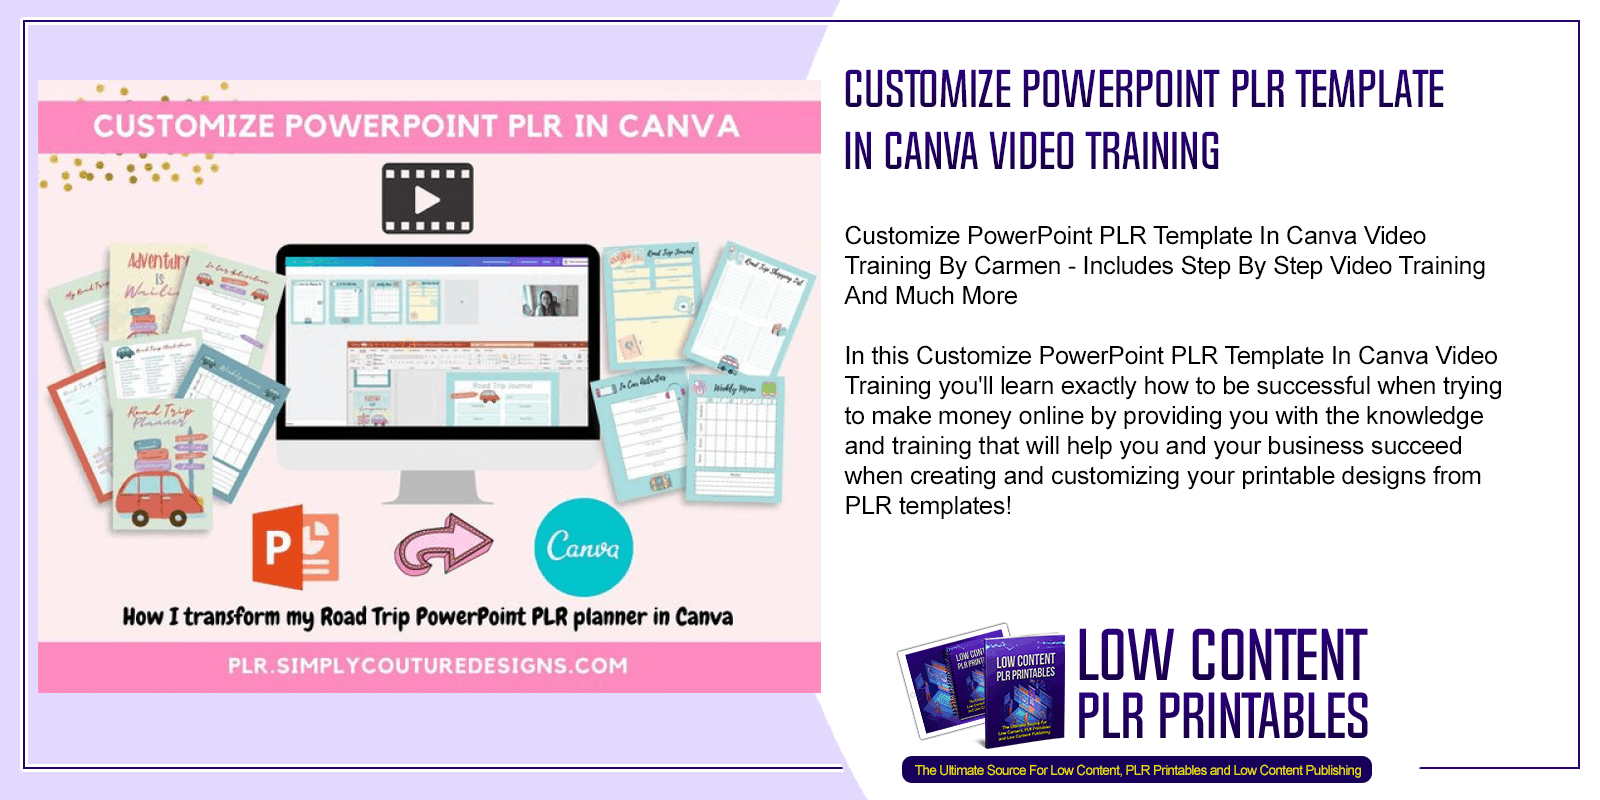 Customize PowerPoint PLR Template In Canva Video Training